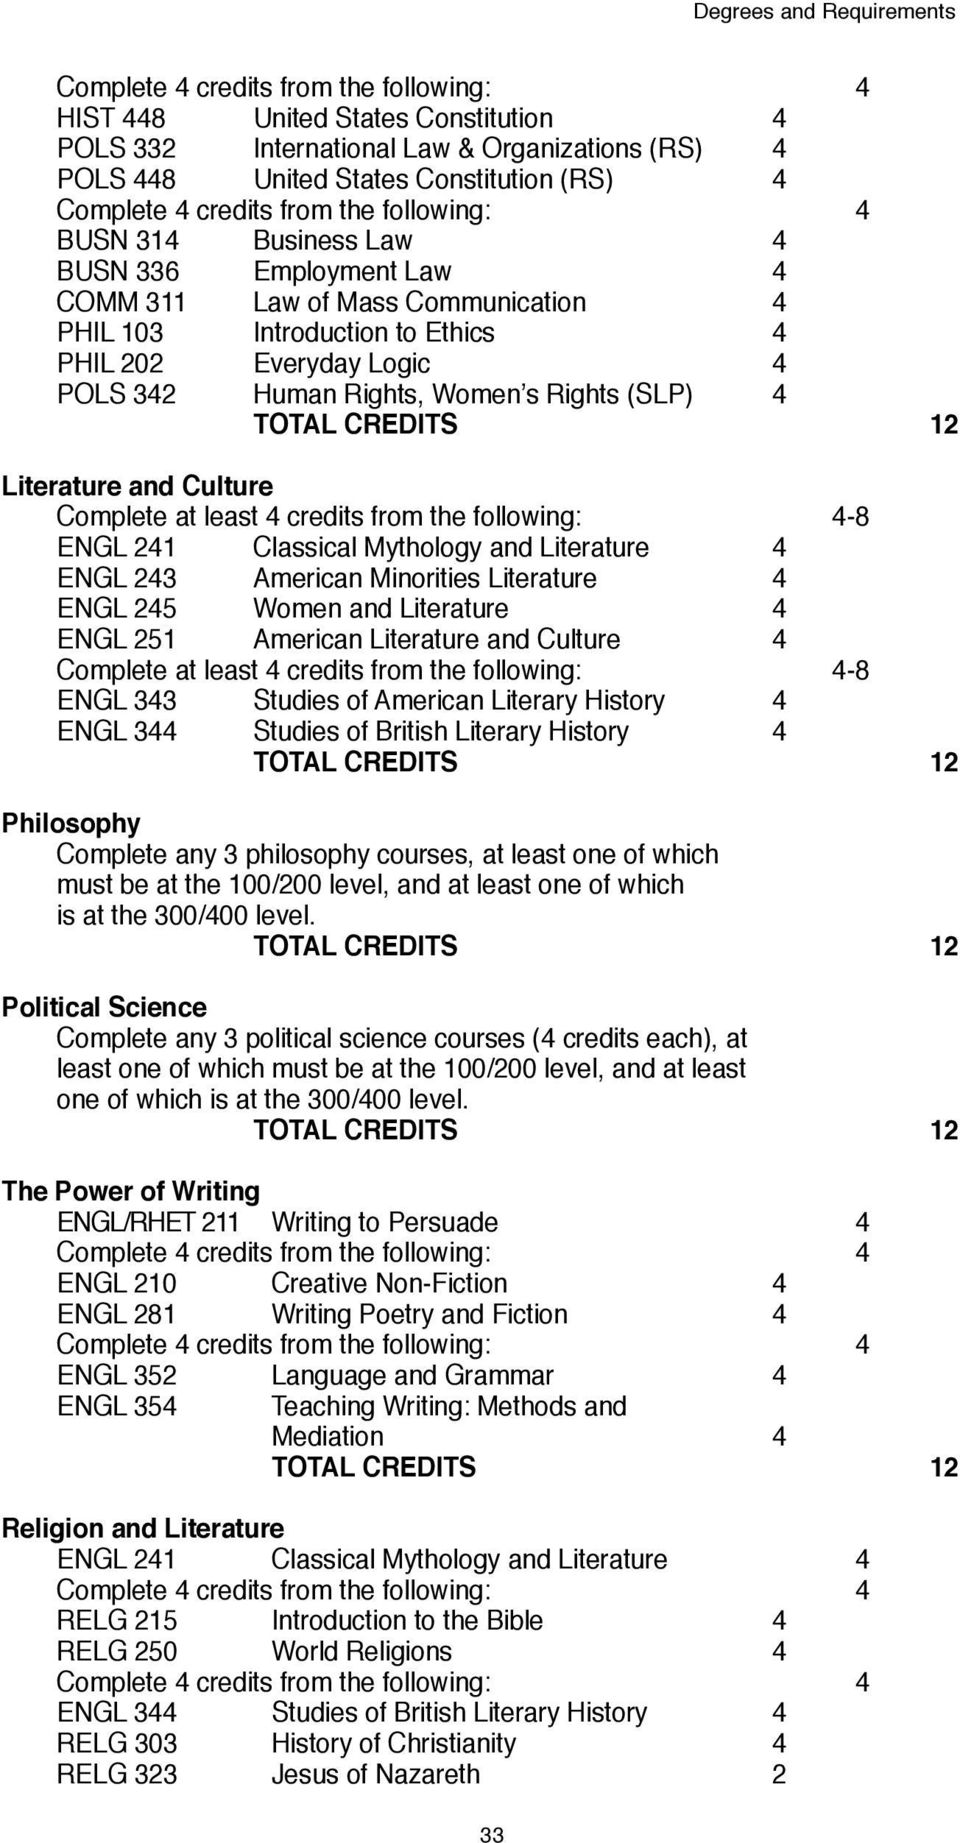 4-8 ENGL 241 Classical Mythology and Literature 4 ENGL 243 American Minorities Literature 4 ENGL 245 Women and Literature 4 ENGL 251 American Literature and Culture 4 Complete at least 4 credits from